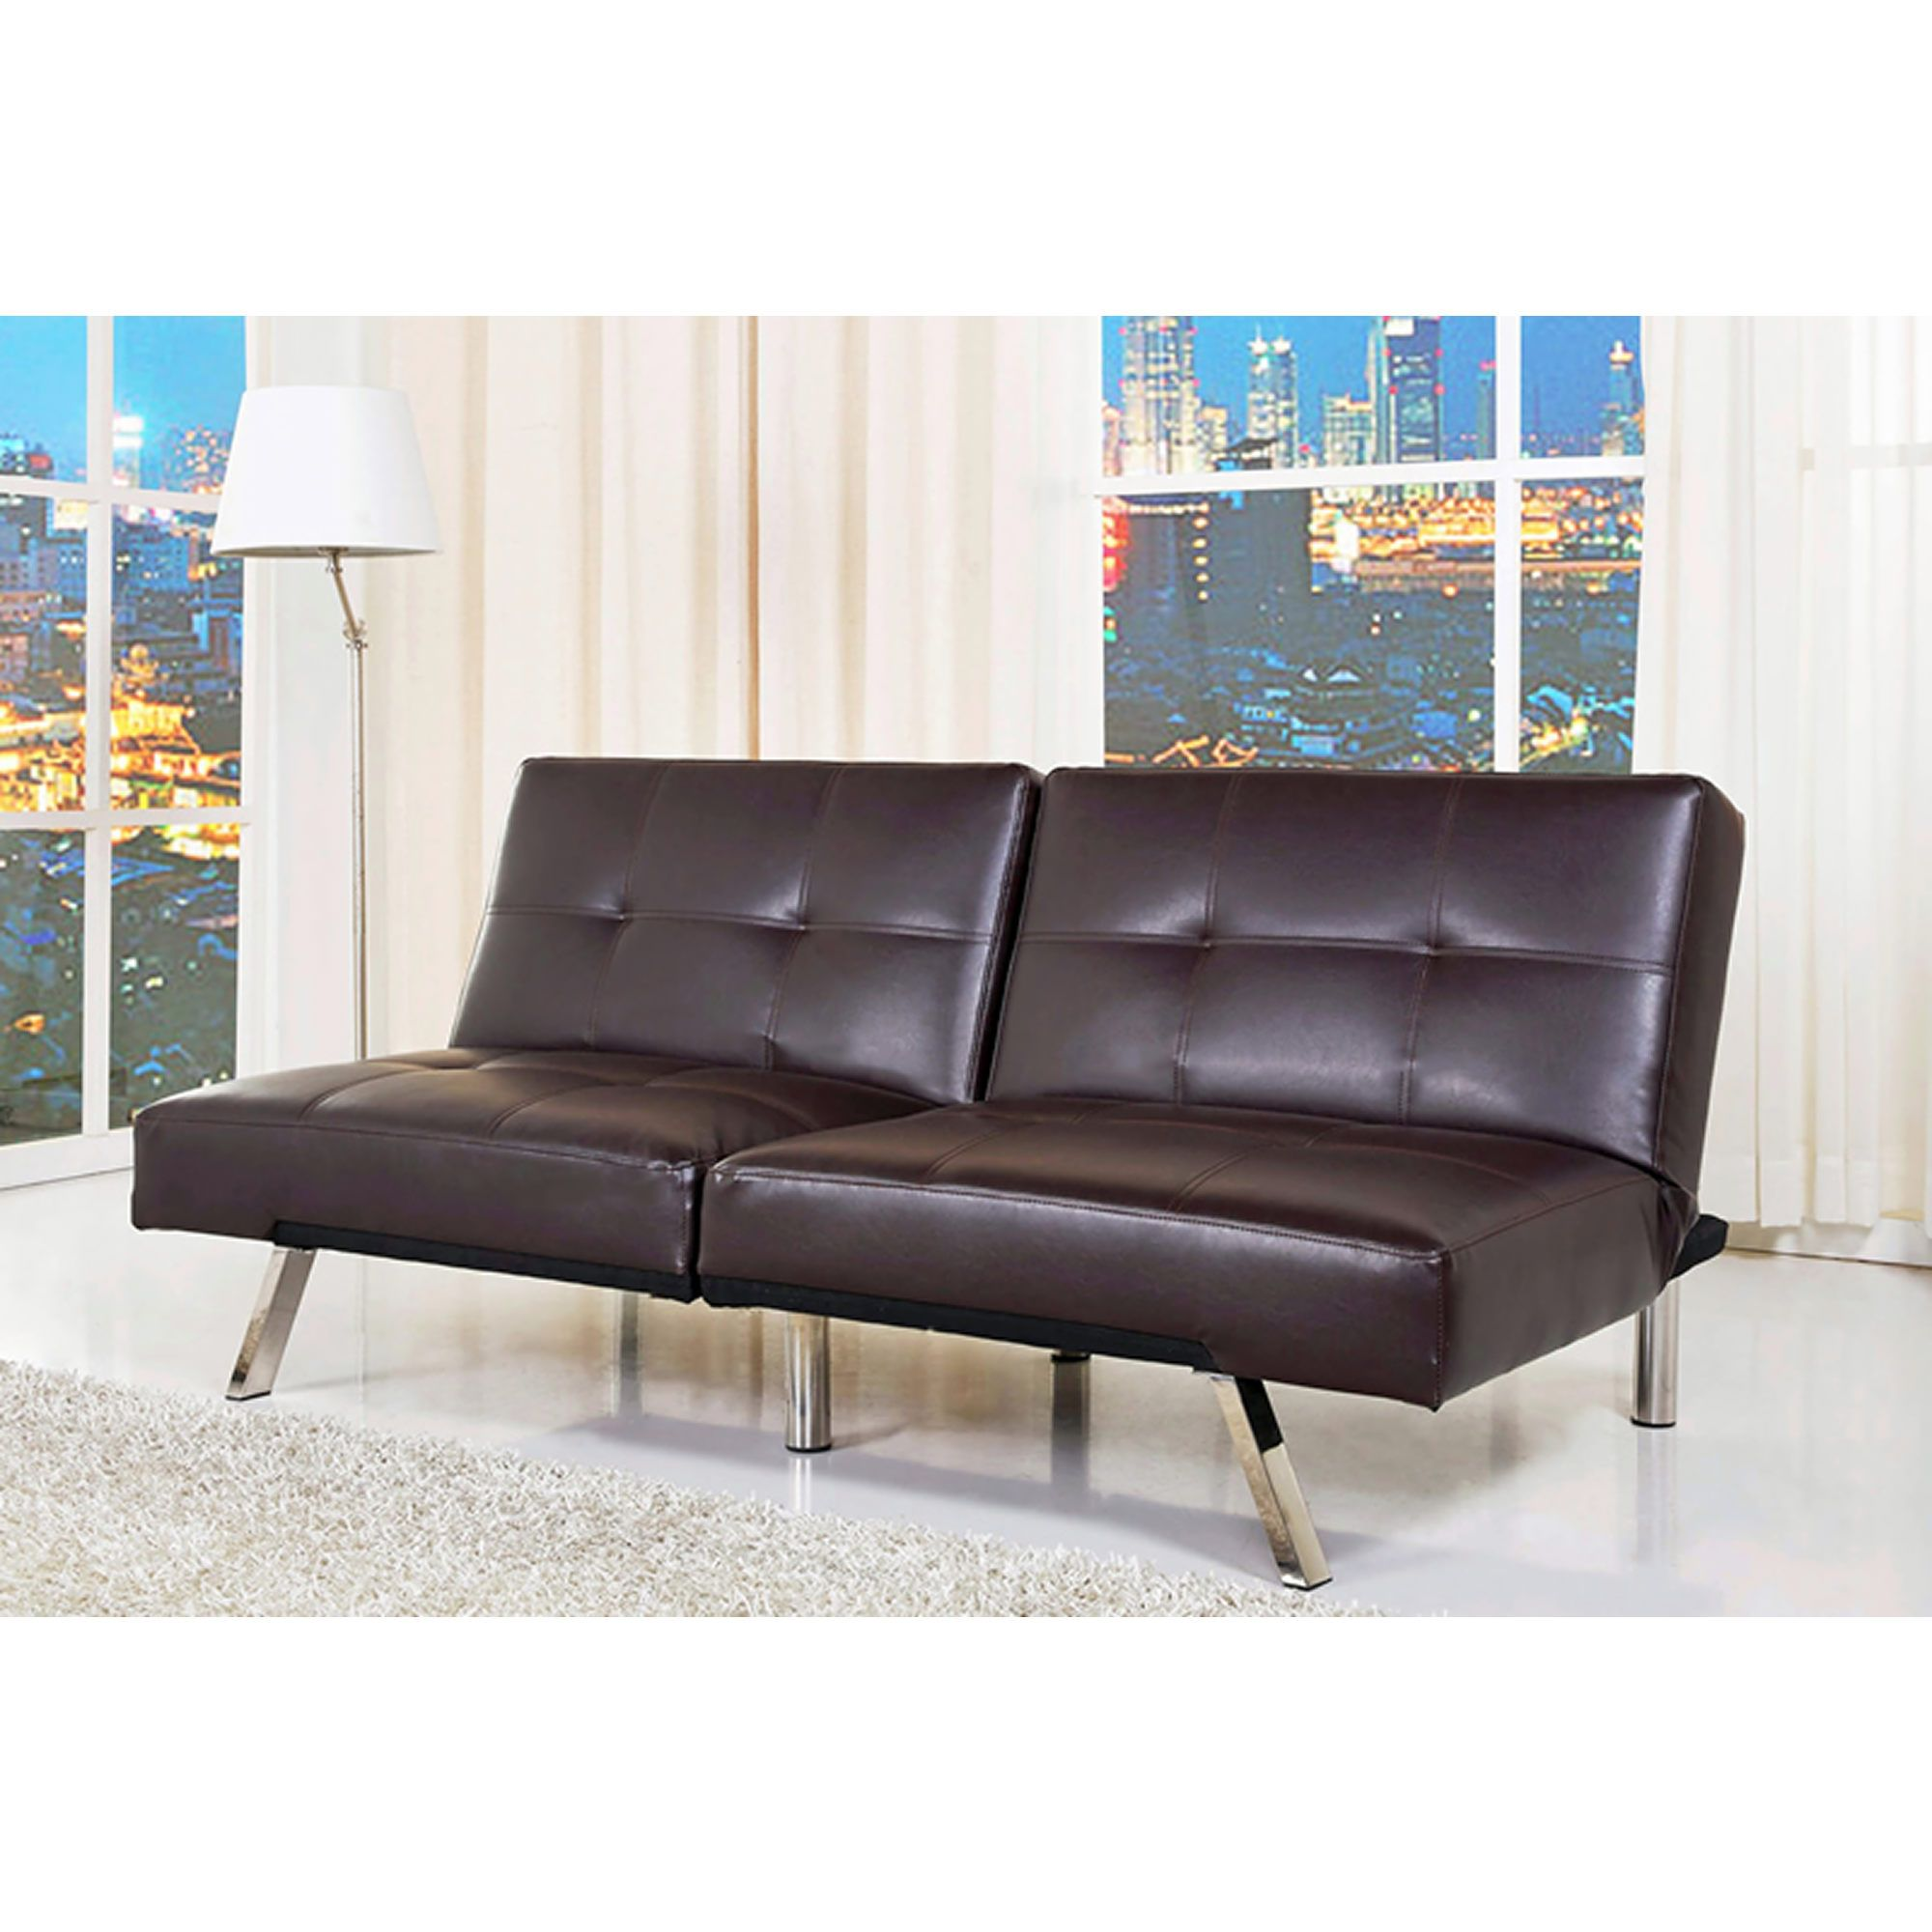 Abbyson Living Milano Leather Convertible Sofa Dark Brown Bjs Whole Club